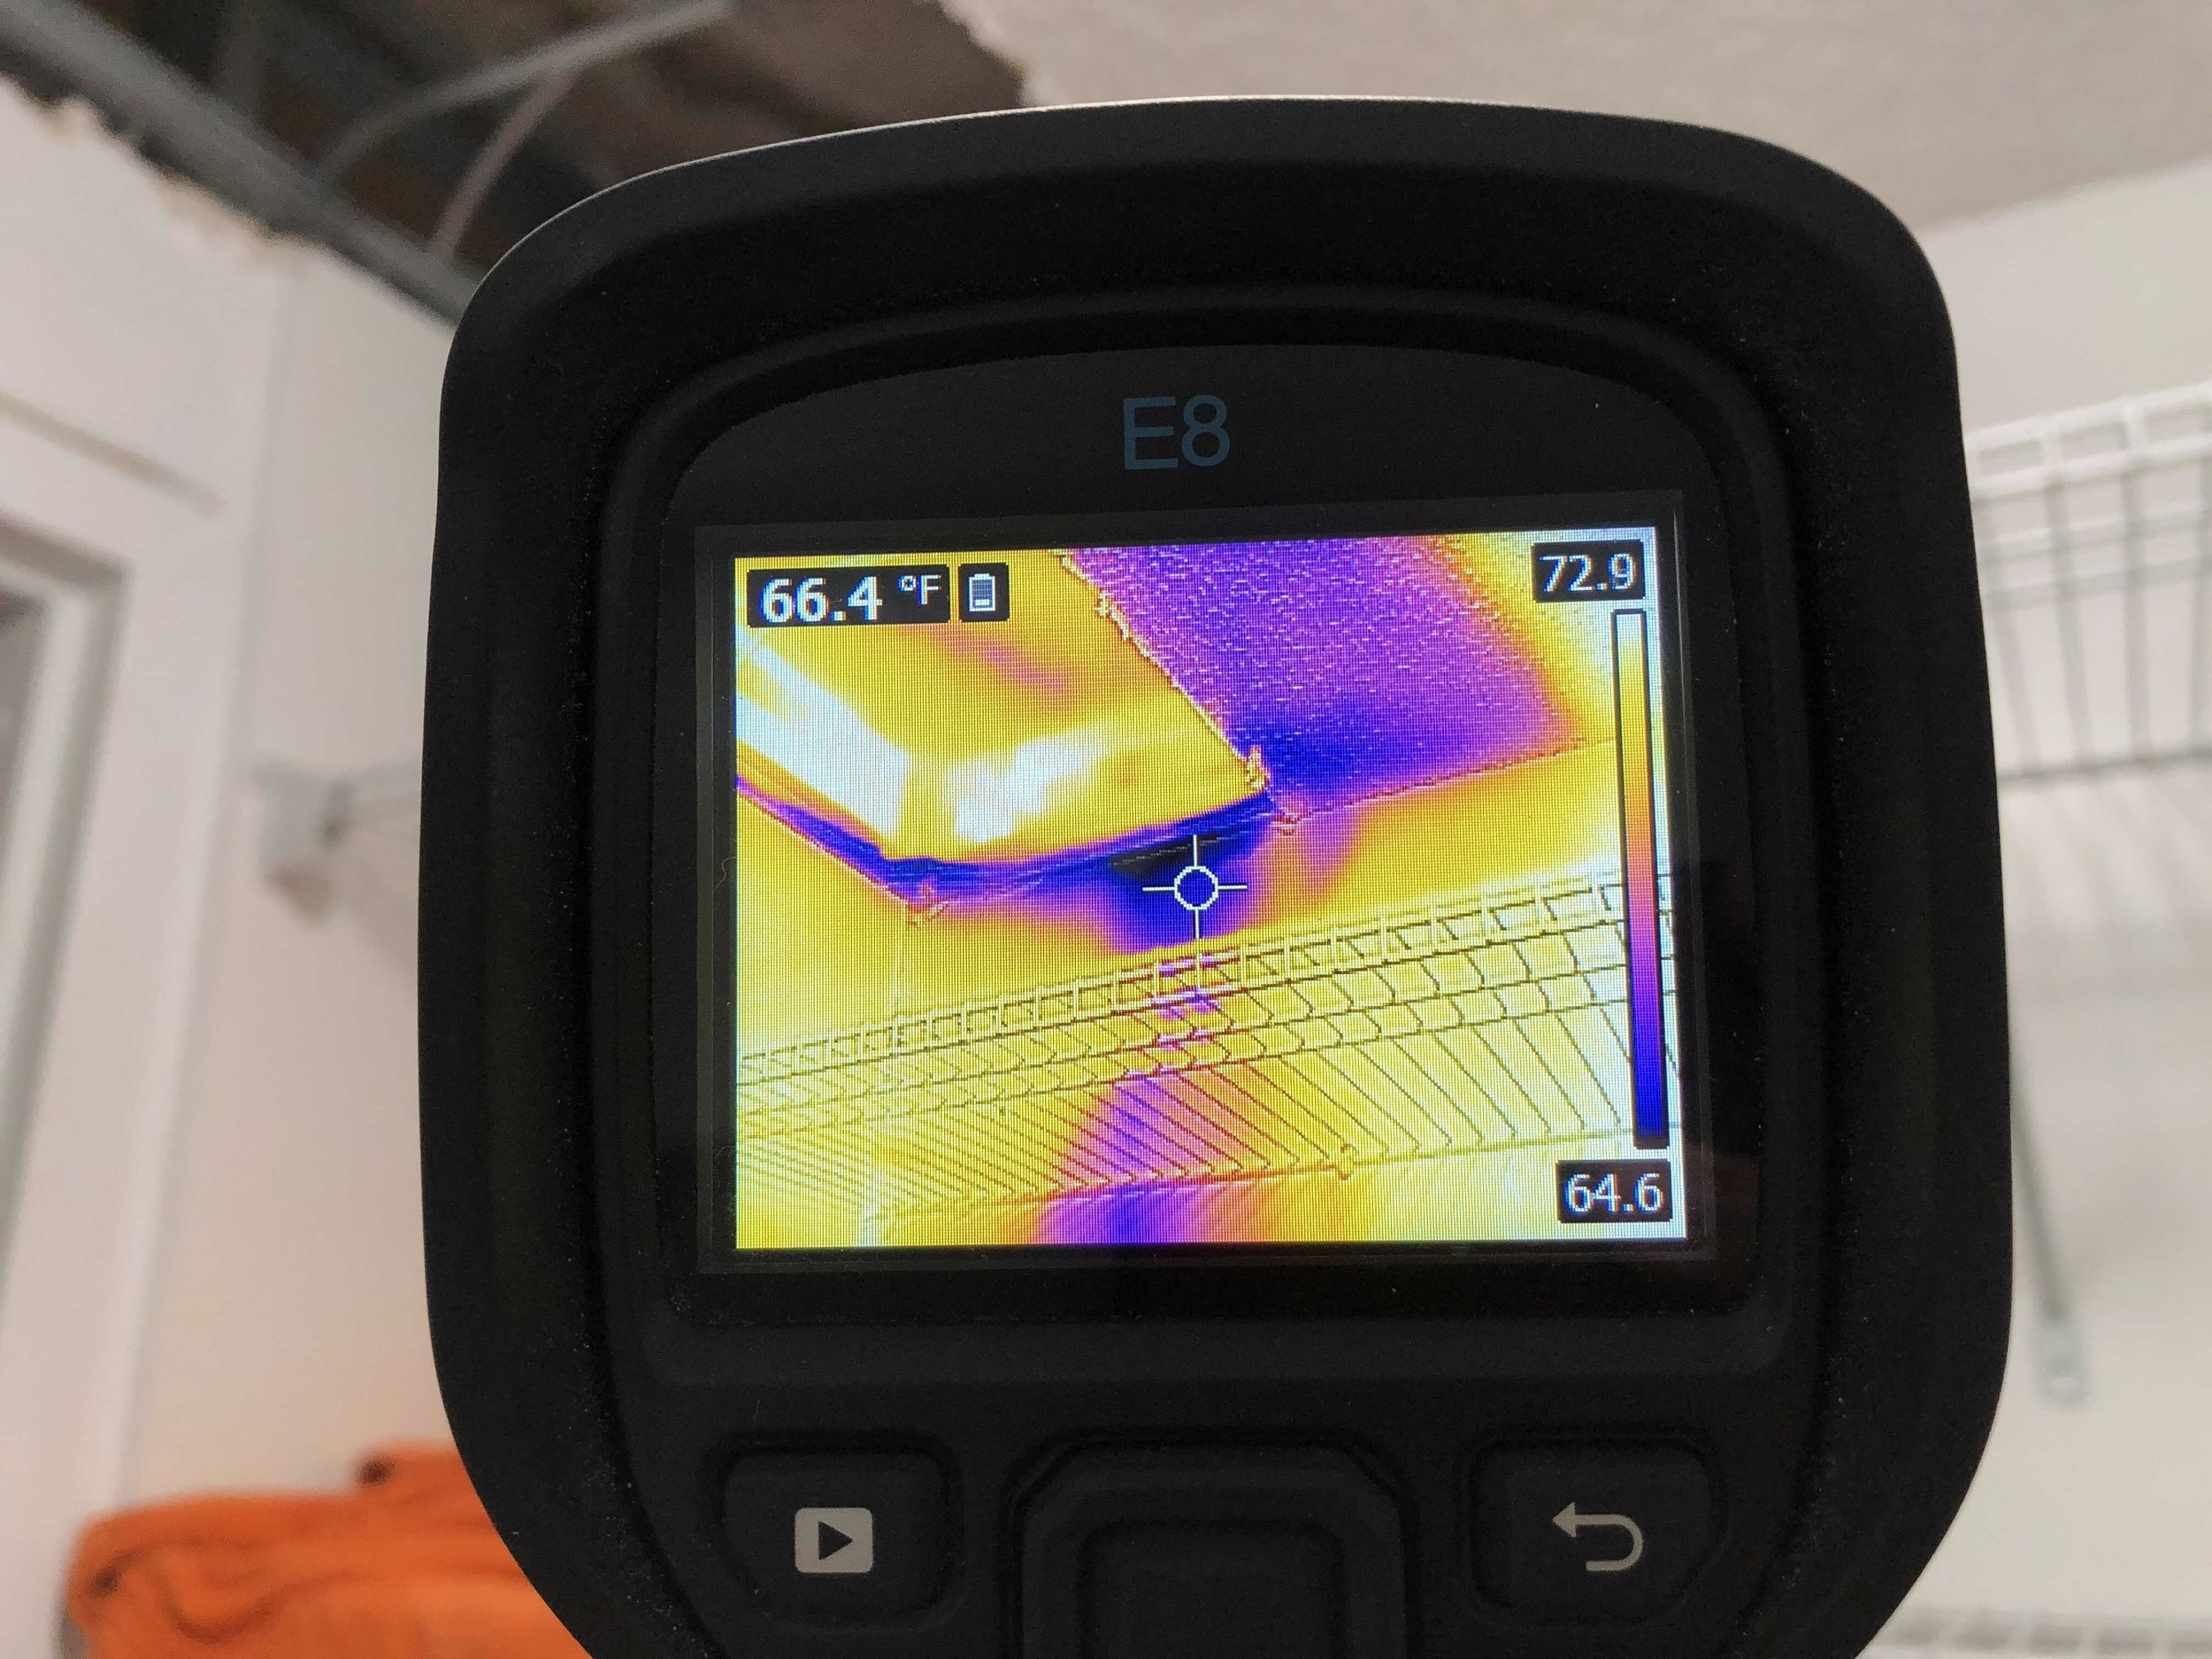 Thermal camera showing water leak from above